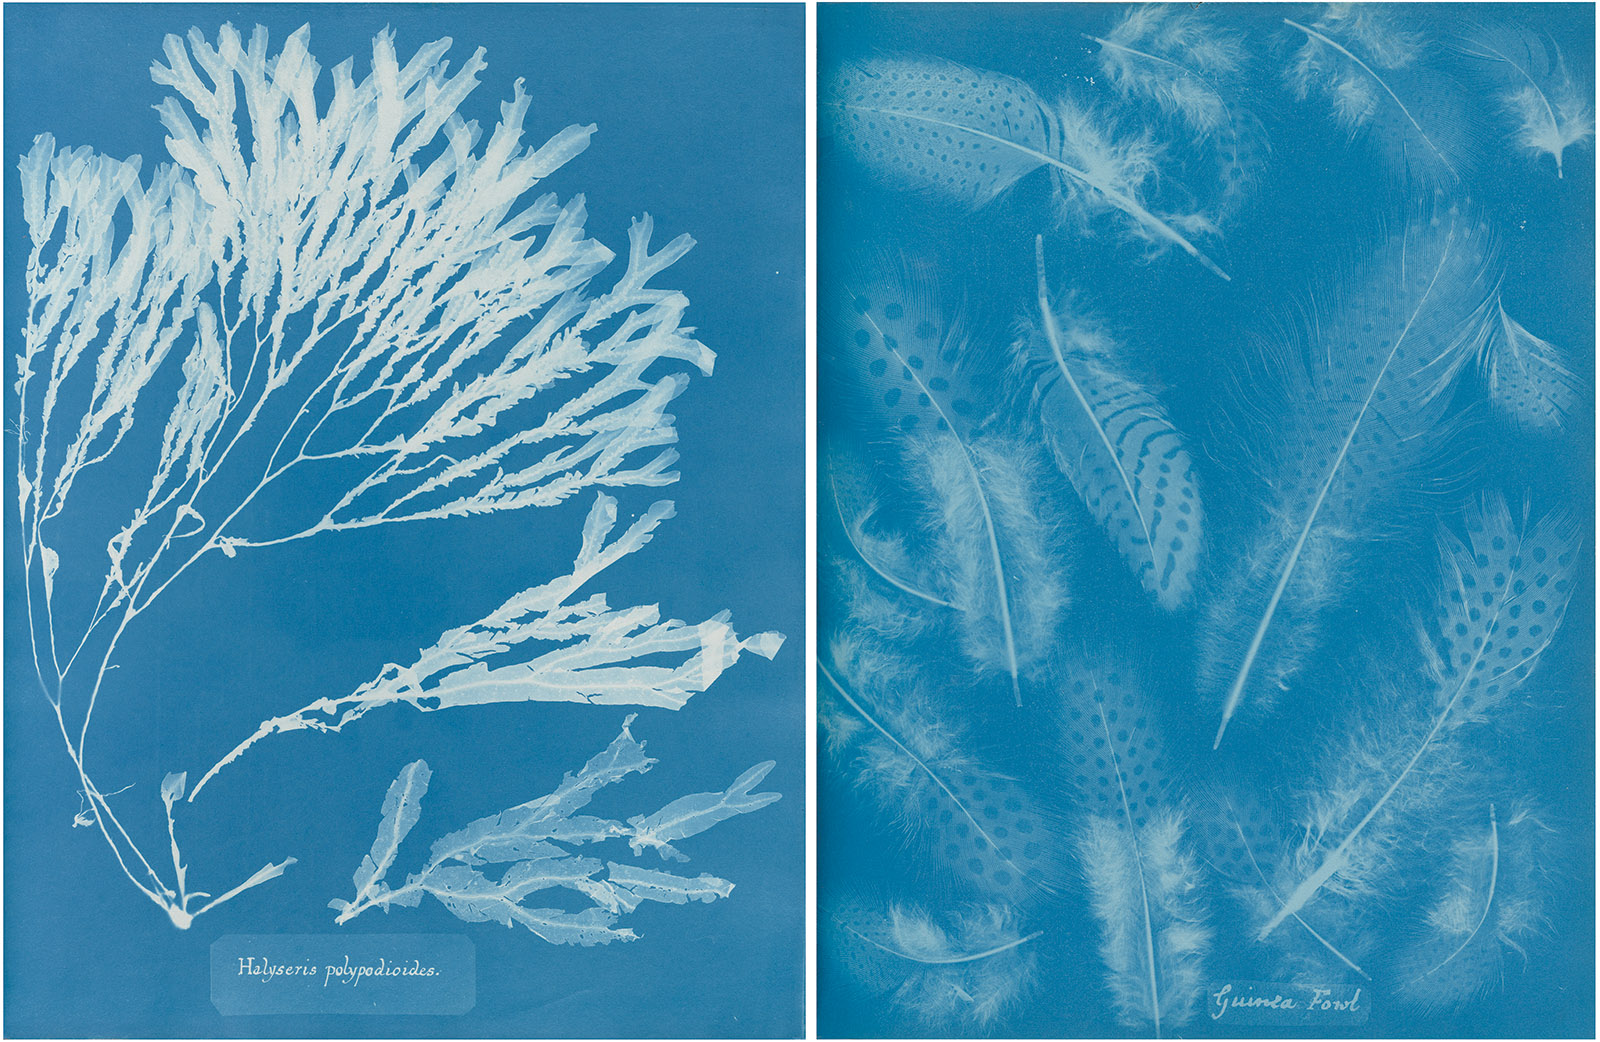 Two cyanotypes by Anna Atkins